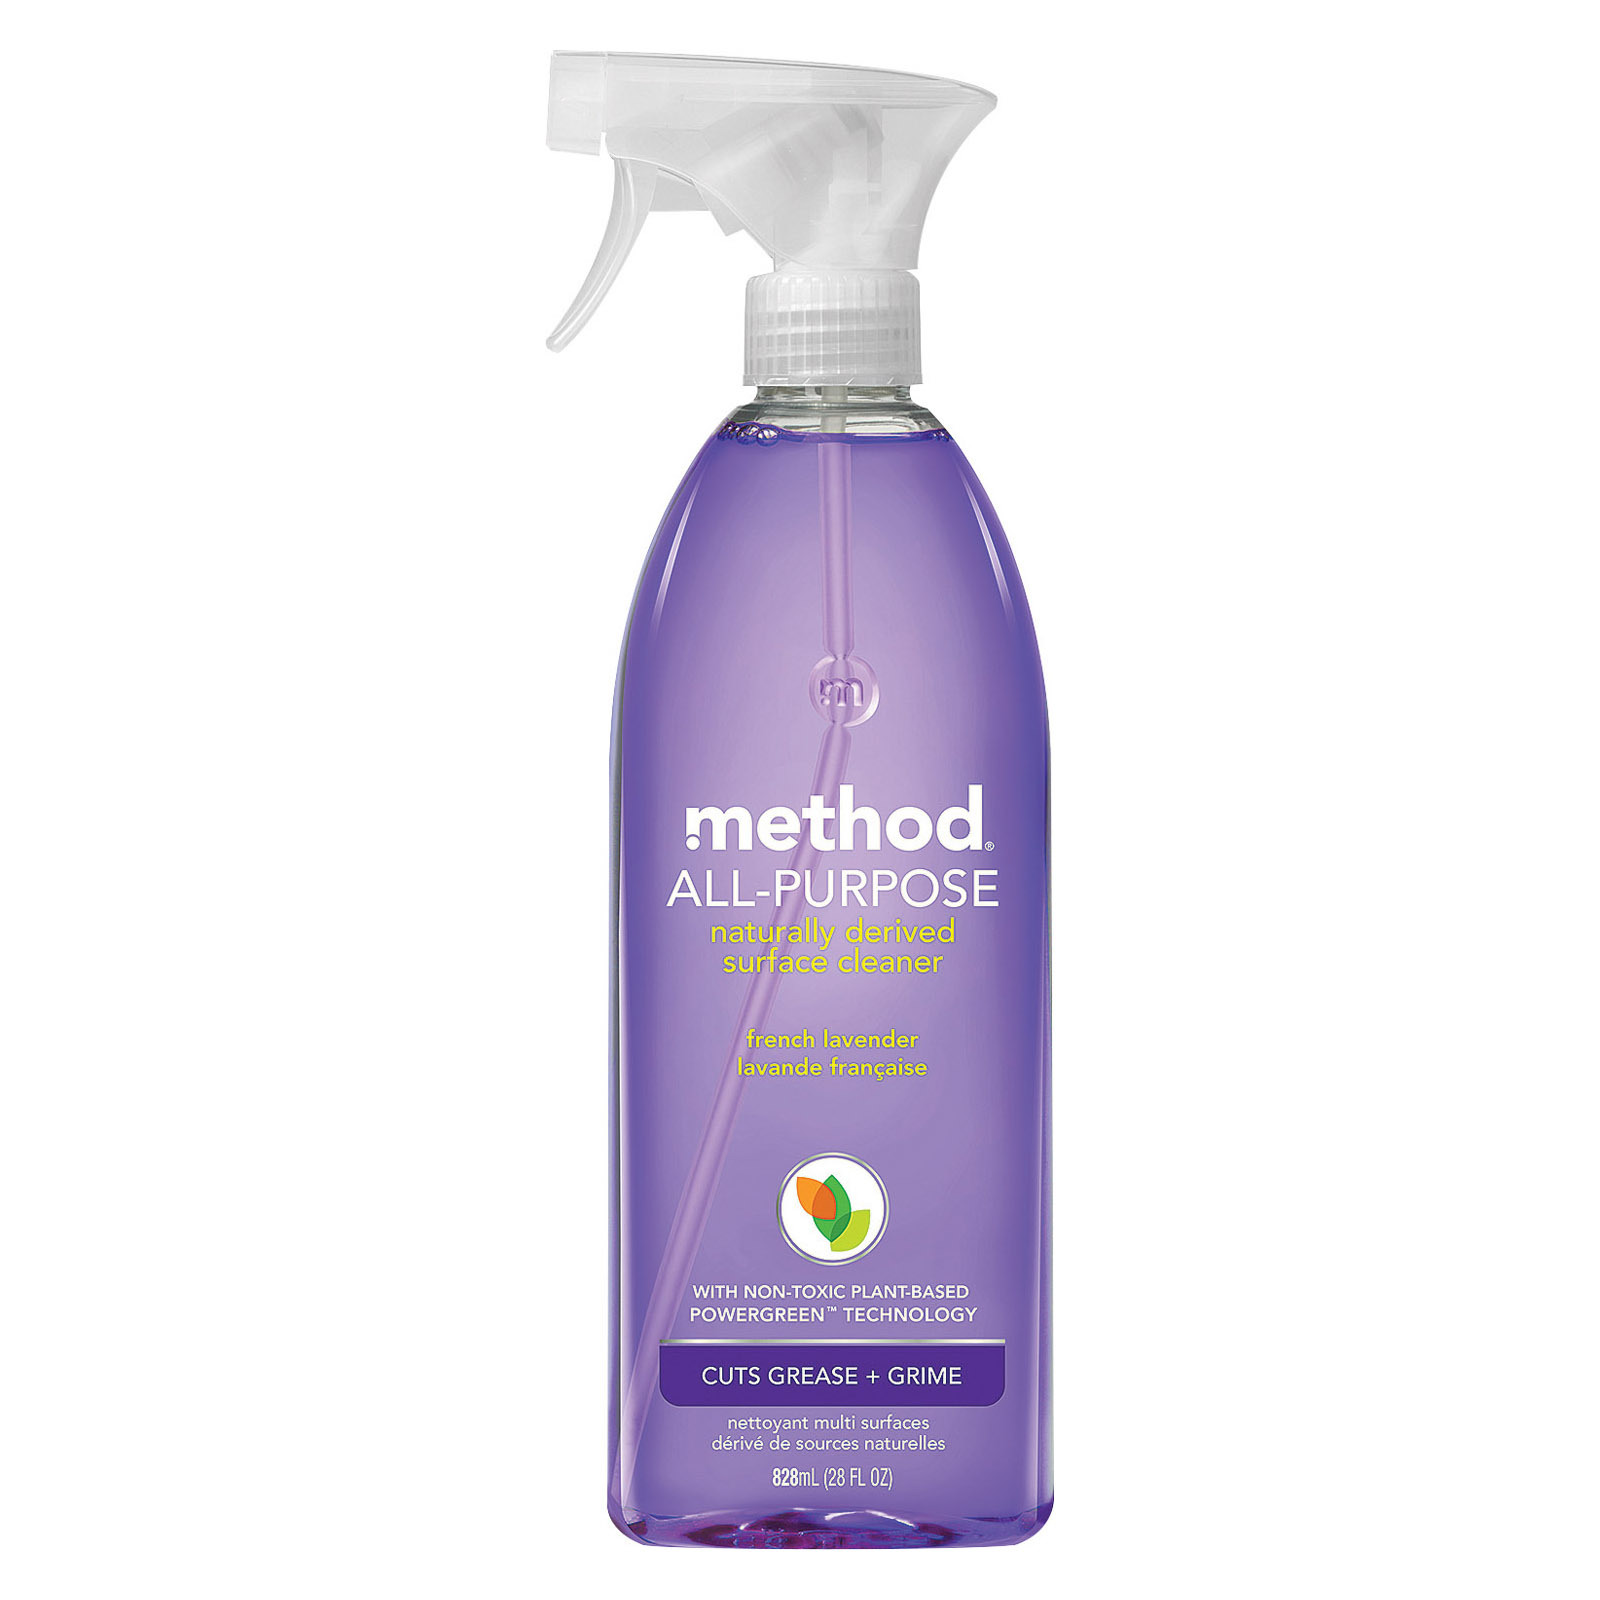 Method Products Inc Spray Cleaner - A/P - Lavender - Case of 8 - 28 fl oz